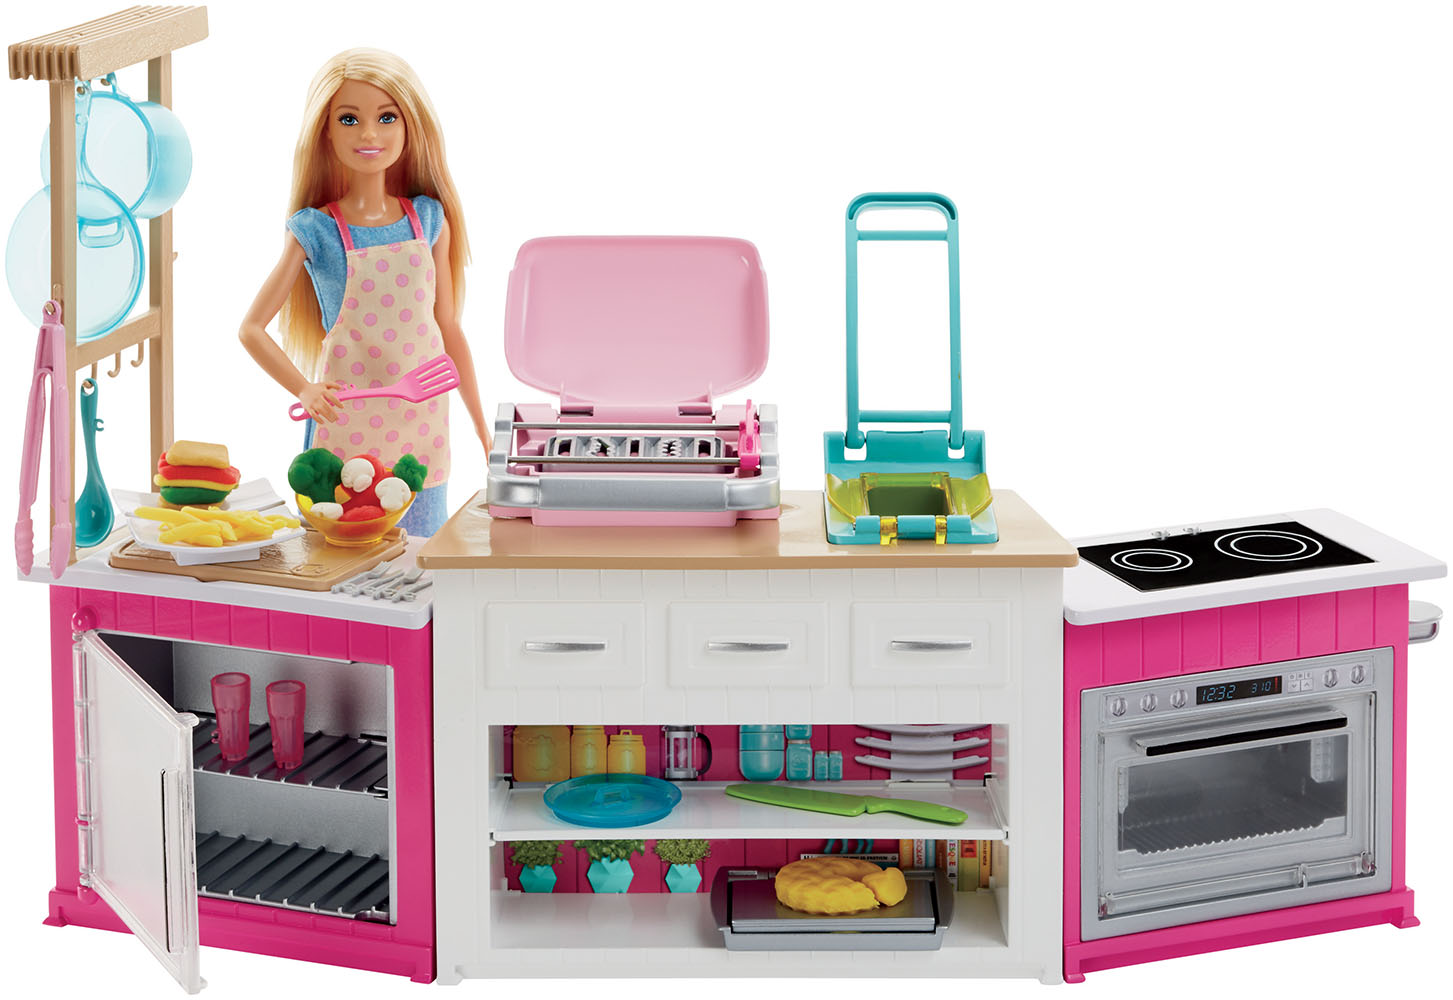 Barbie - Cuisine ultime à modeler avec Barbie incluse